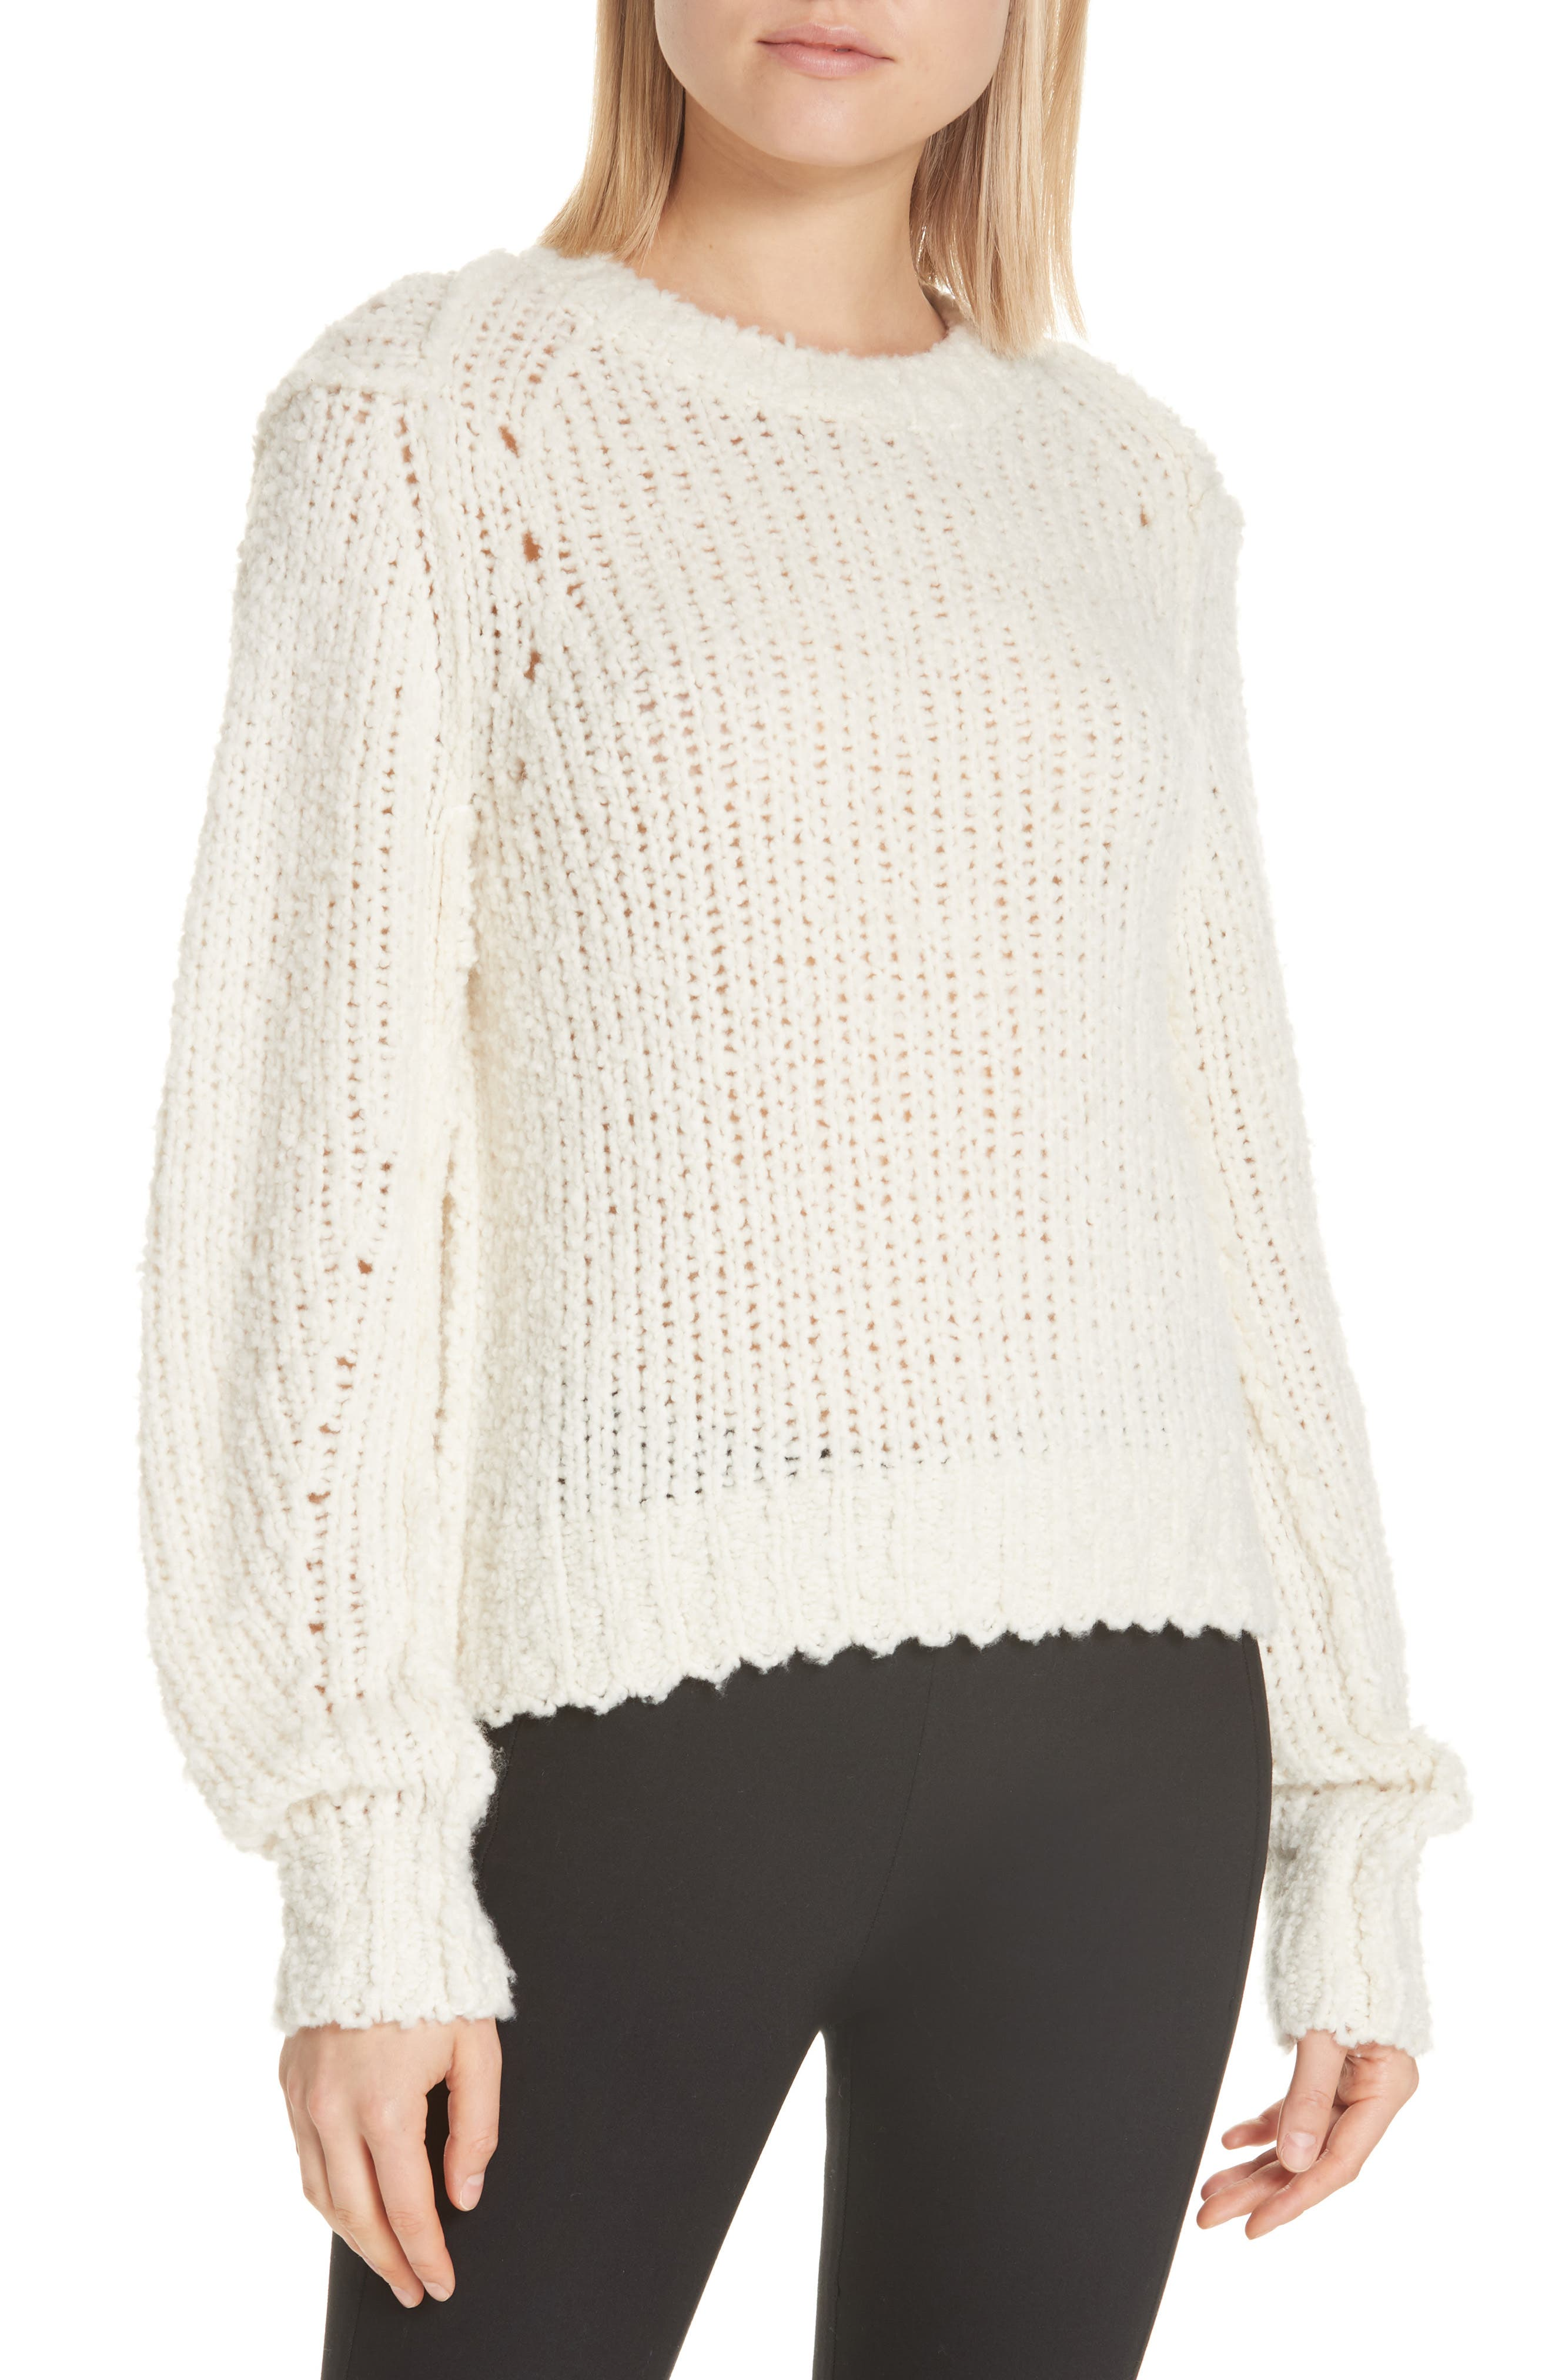 Arizona Merino Wool Sweater by Rag & Bone